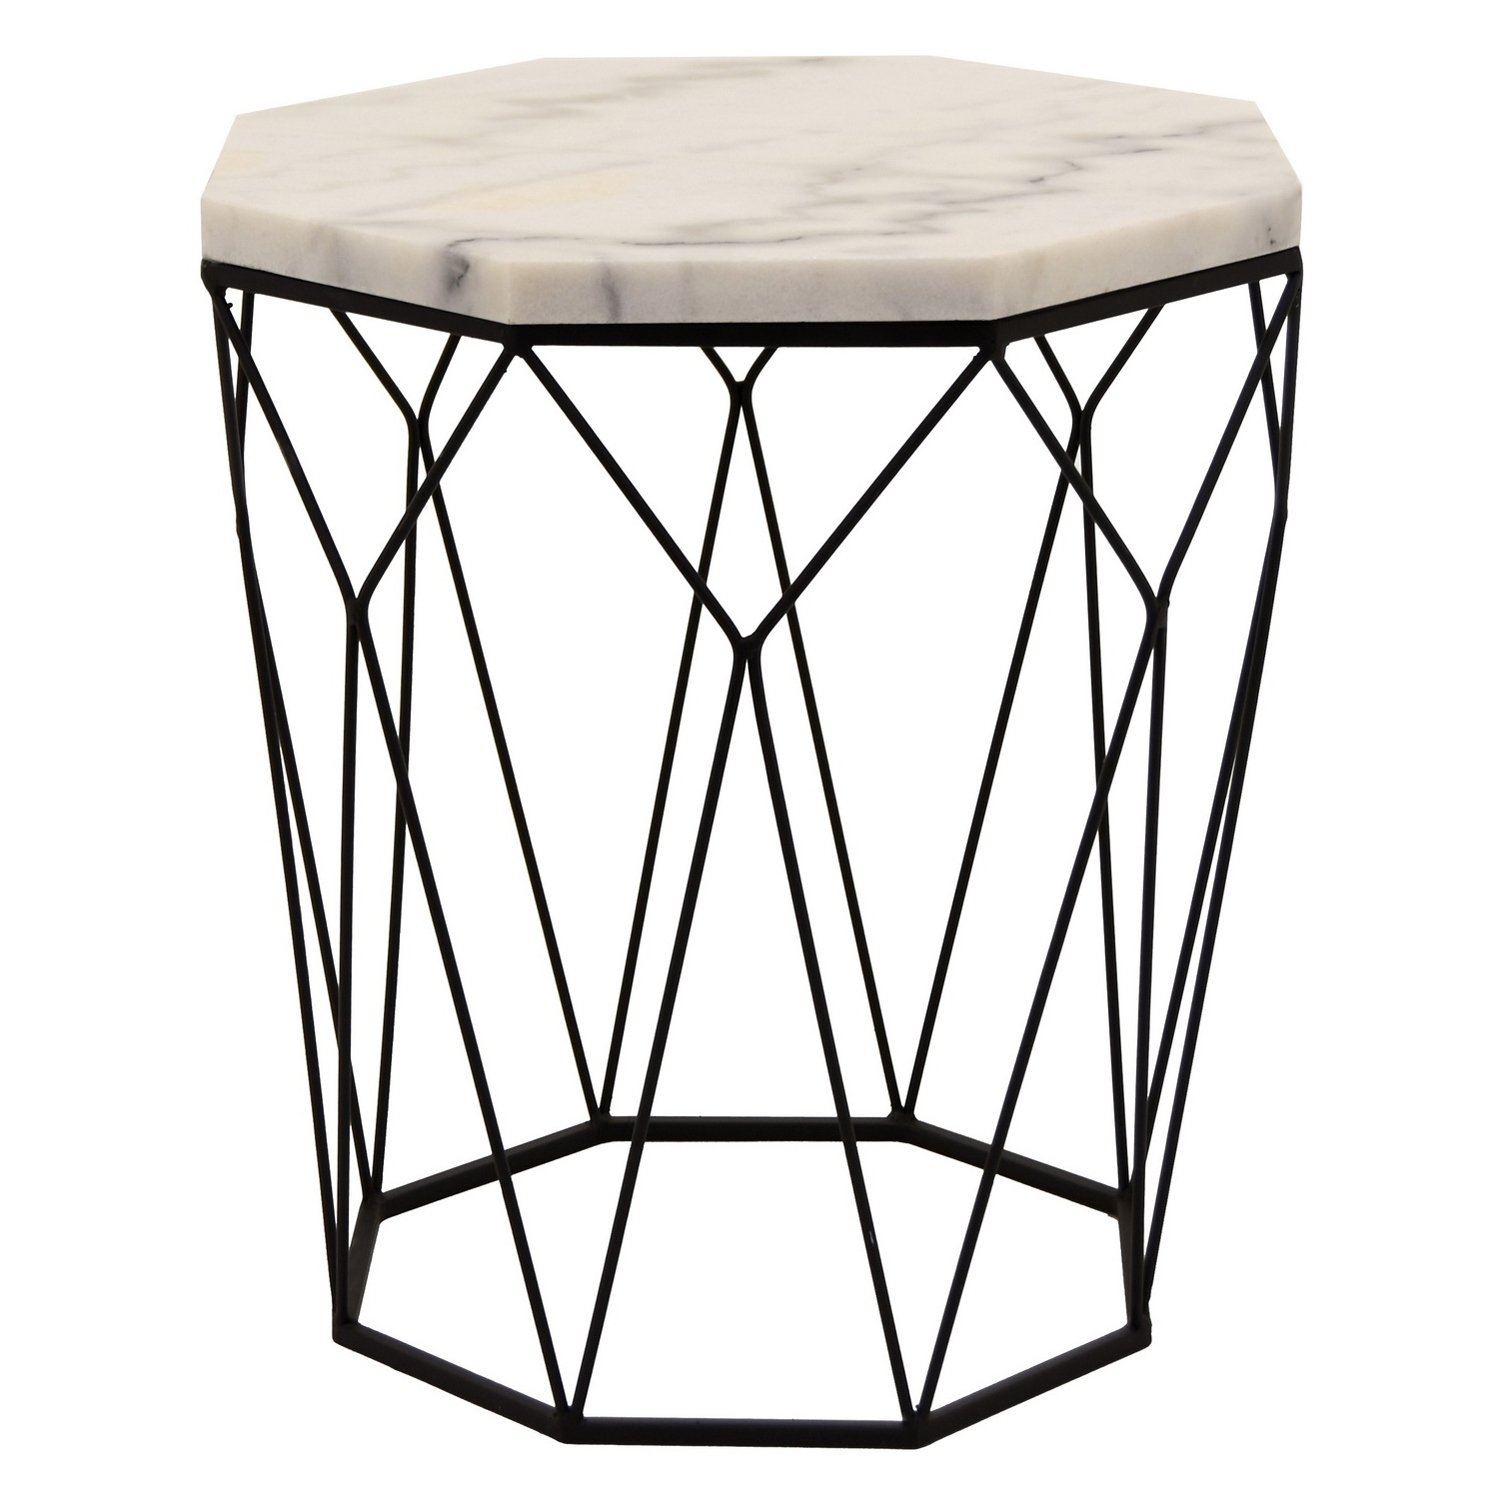 three hands metal marble accent table free shipping today drum living room cupboard patterned armchair make your own barn door gray nesting tables unique patio umbrellas top legs